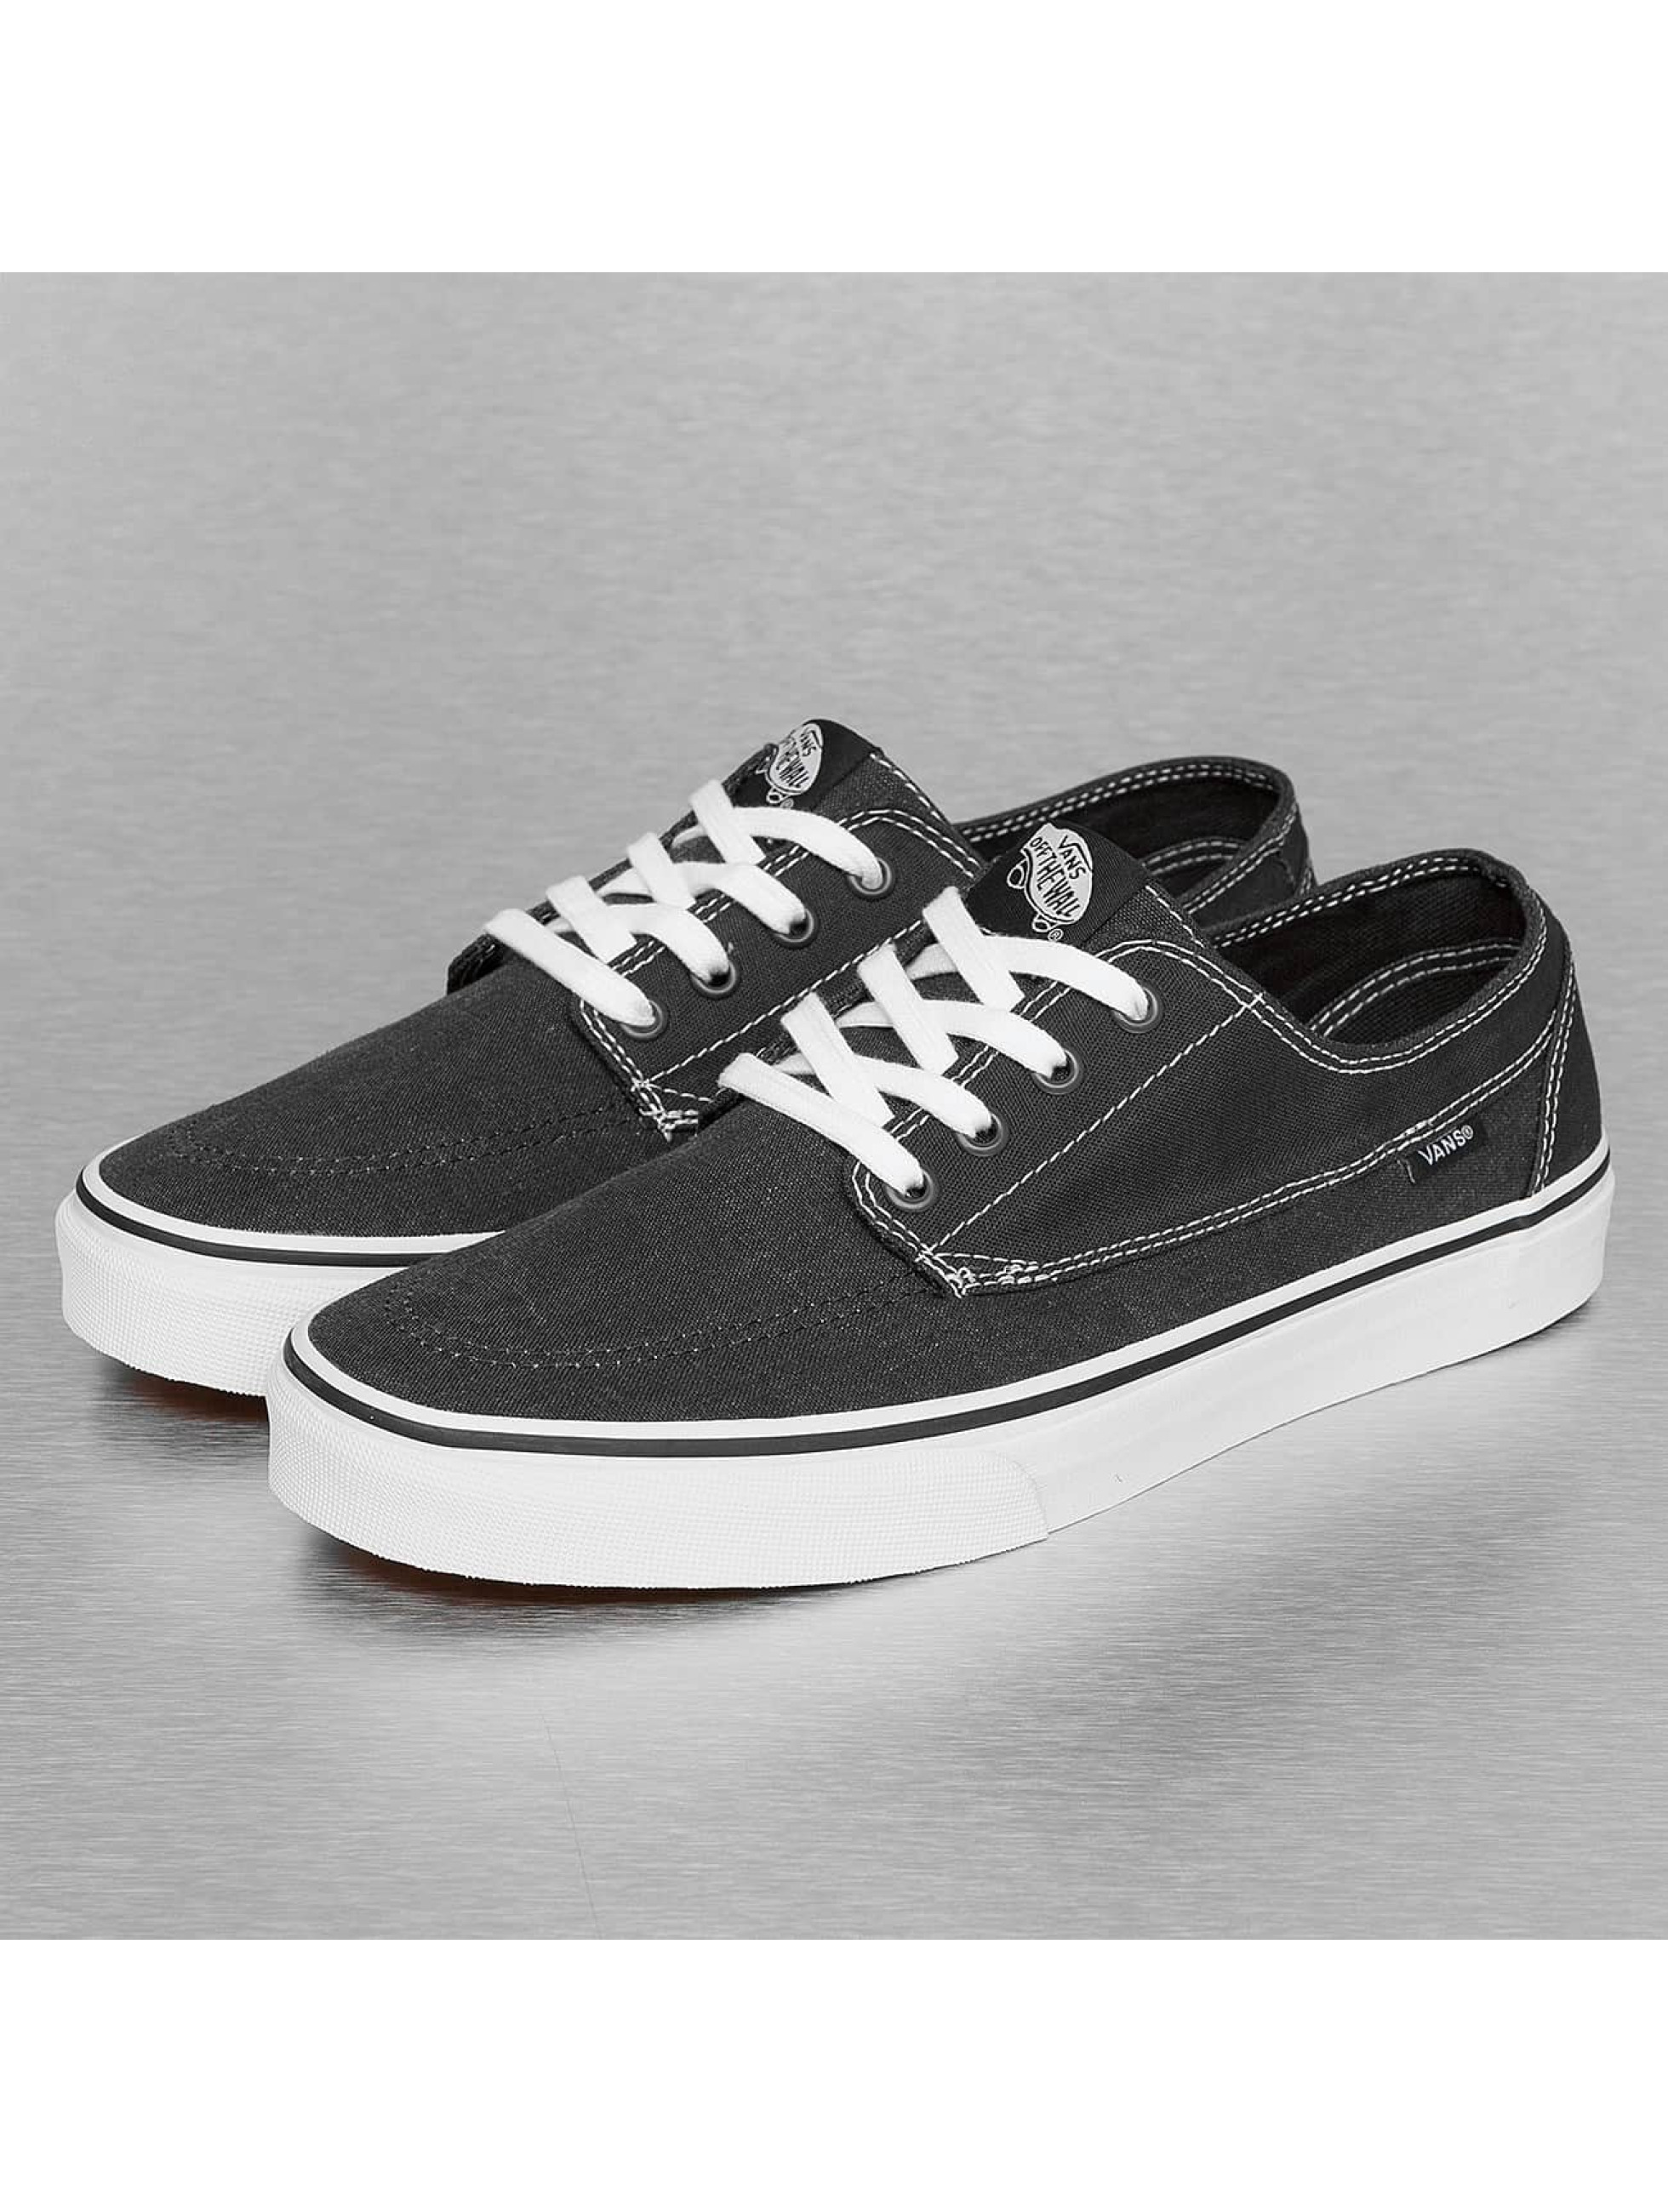 vans herren sneaker brigata washed canvas in schwarz 303794. Black Bedroom Furniture Sets. Home Design Ideas